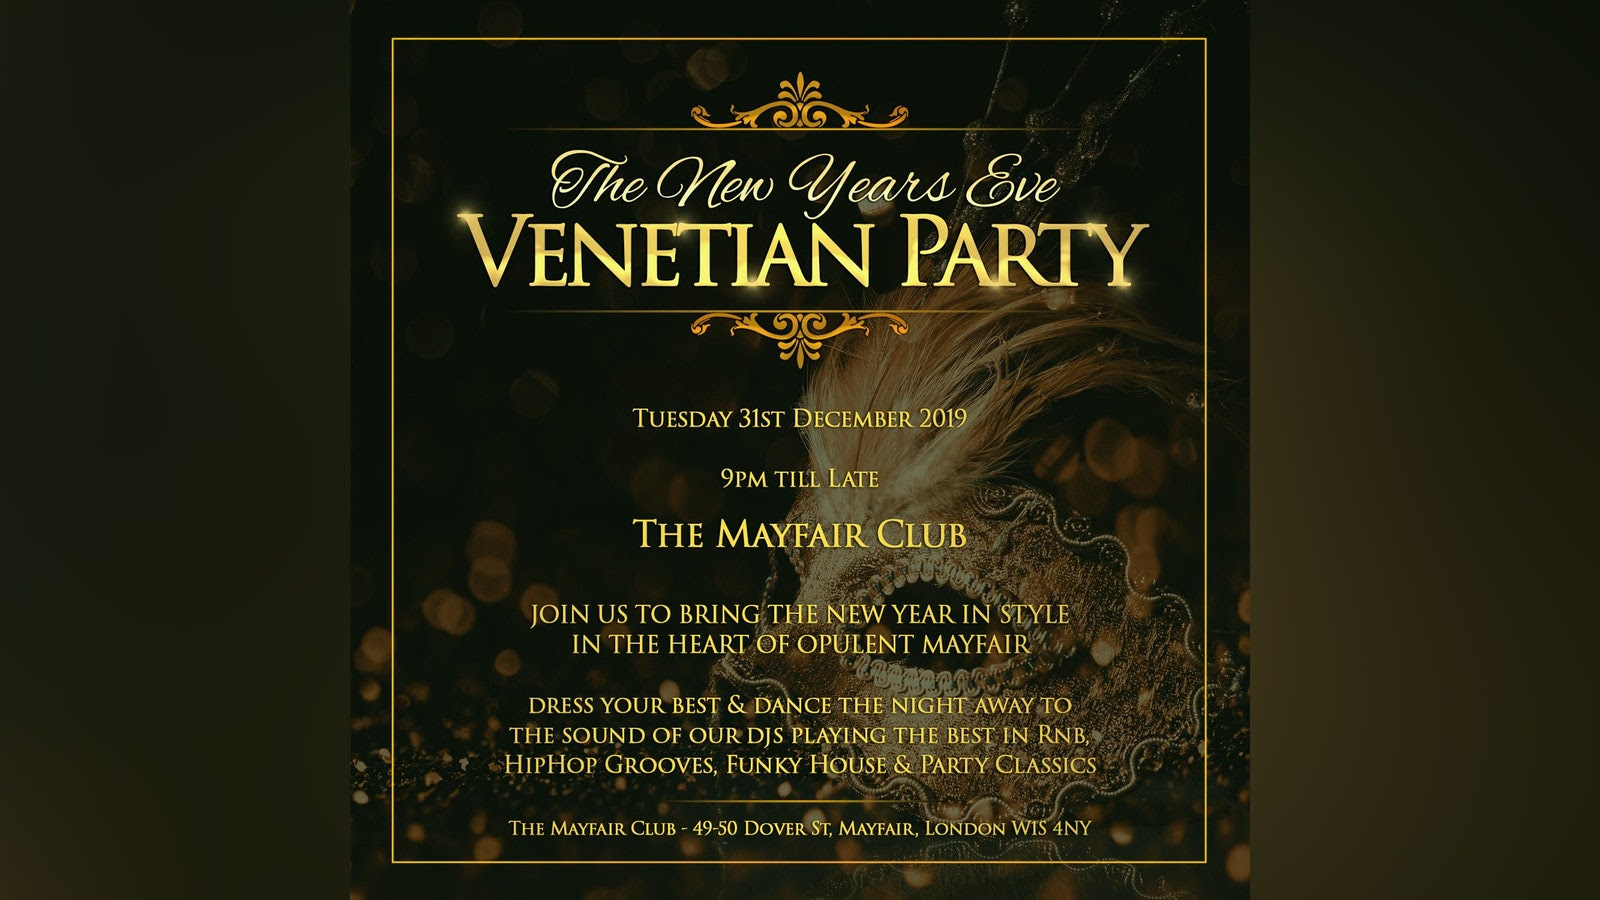 New Year's Eve Venetian Mask Party at The Mayfair Club